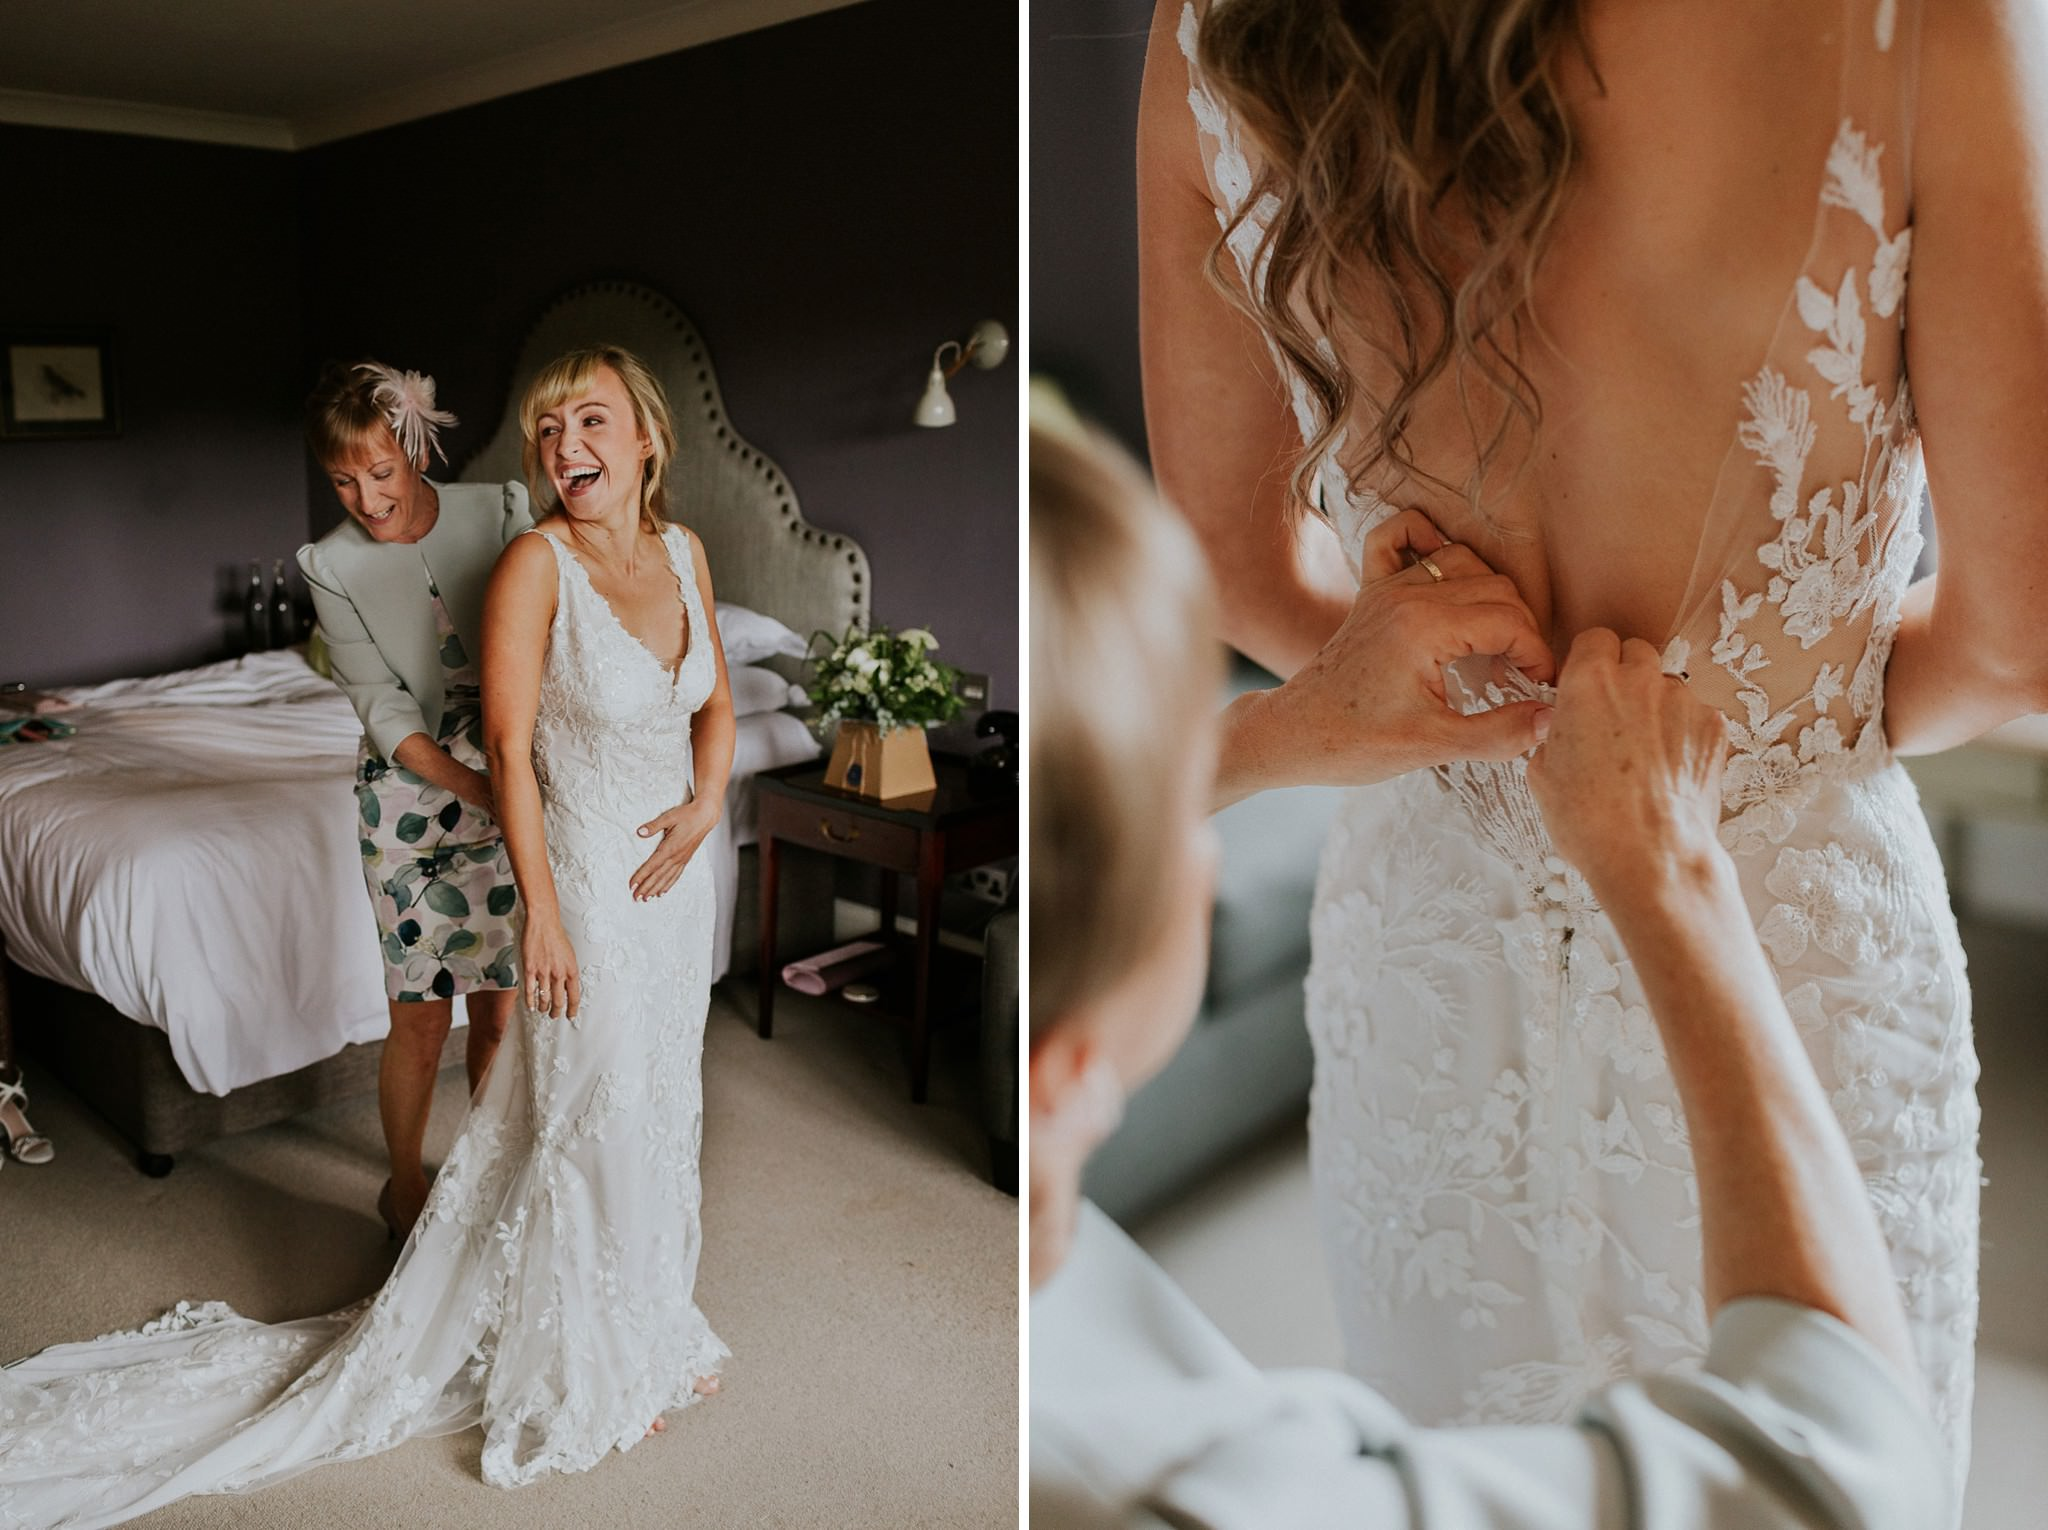 Bride putting her dress on for her wedding in Dorset